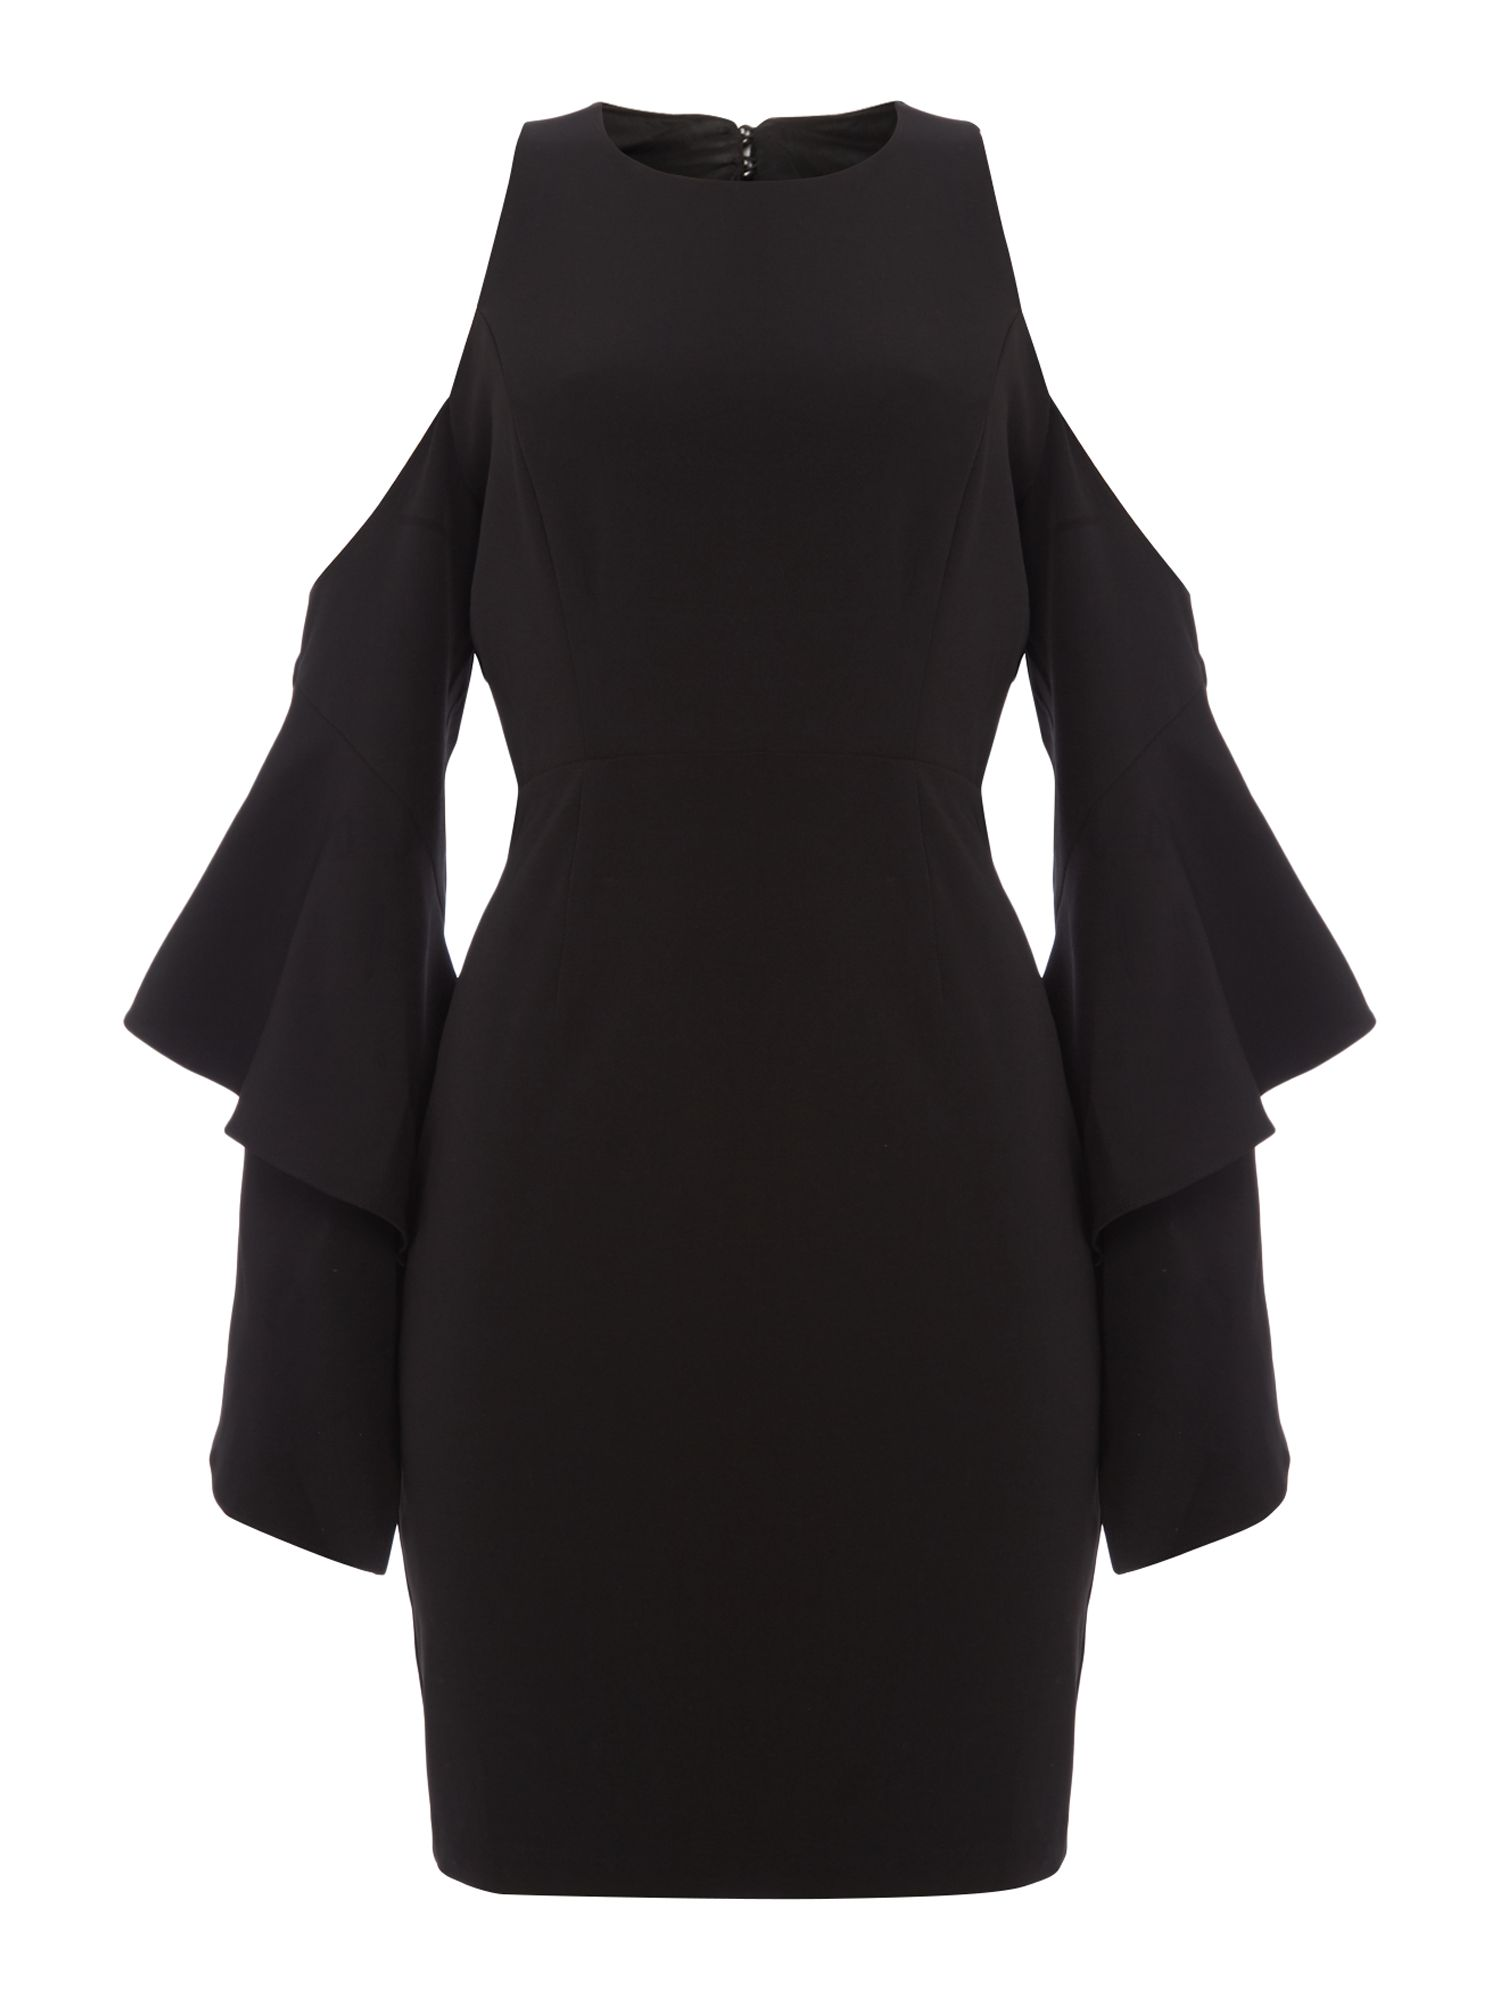 Bardot Long Sleeved Cold Shoulder Open Back Dress, Black